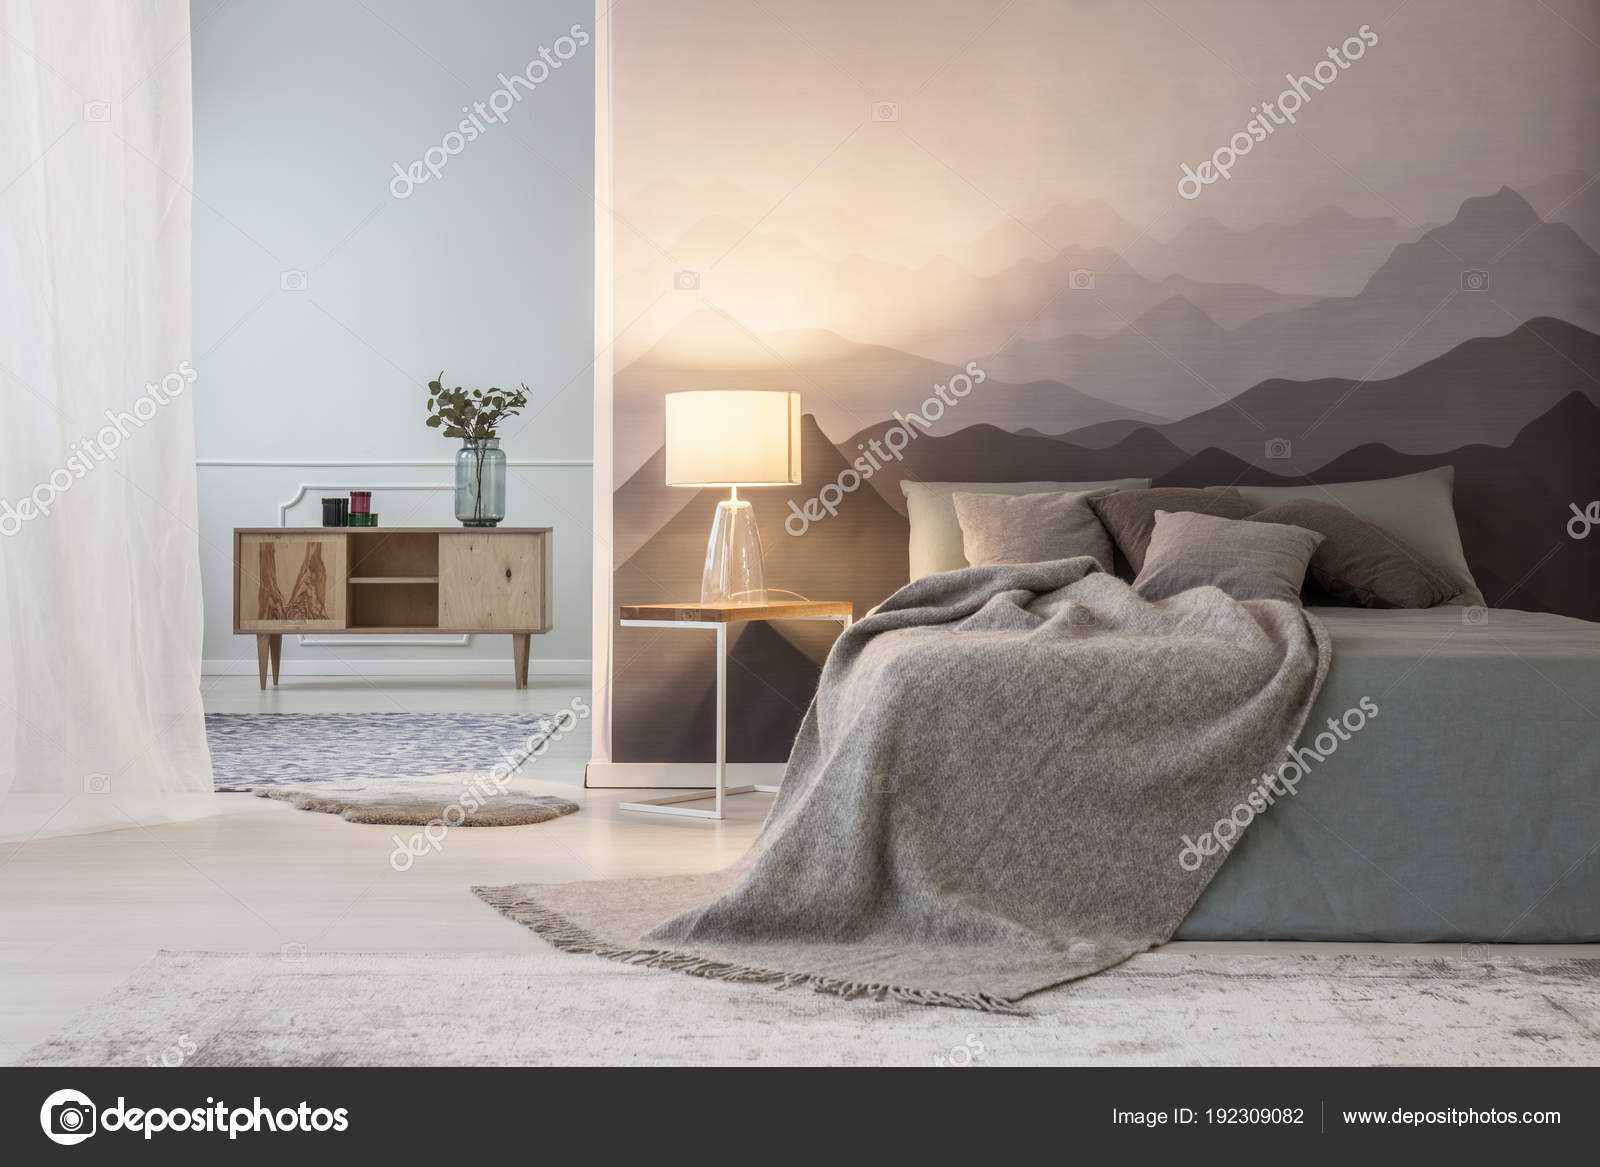 Most Inspiring Wallpaper Mountain Bedroom - depositphotos_192309082-stock-photo-mountain-lovers-open-space-bedroom  You Should Have_397777.jpg